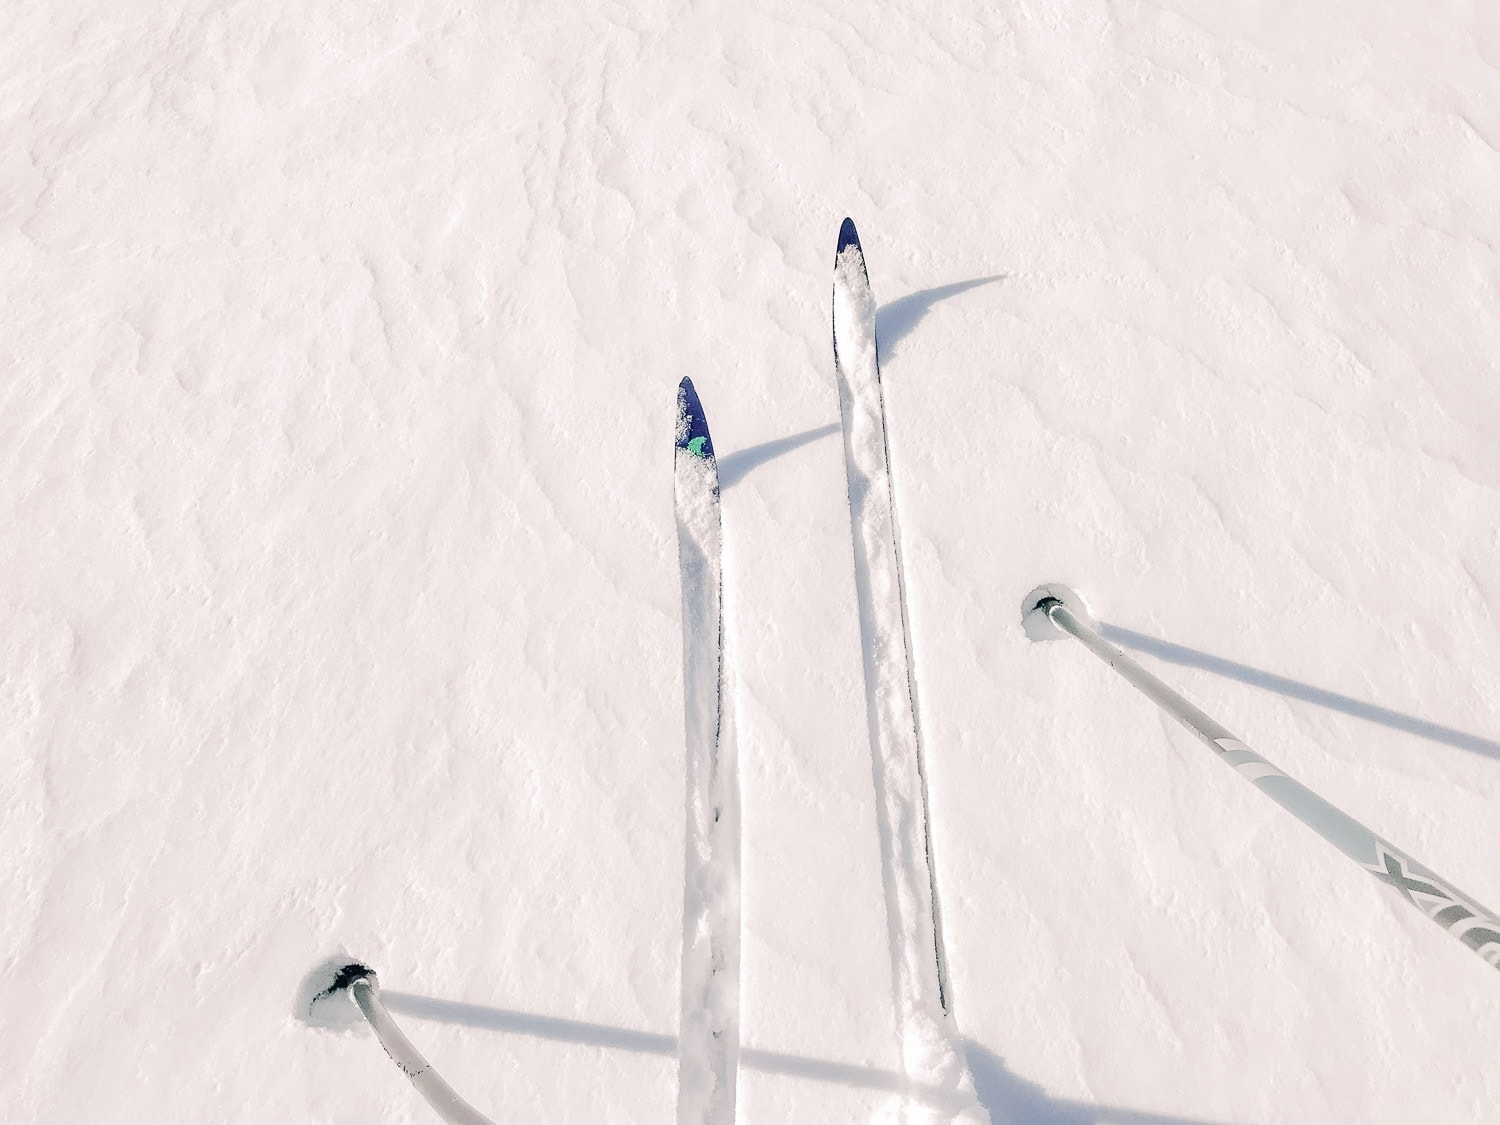 cross country skiing tips for Colorado